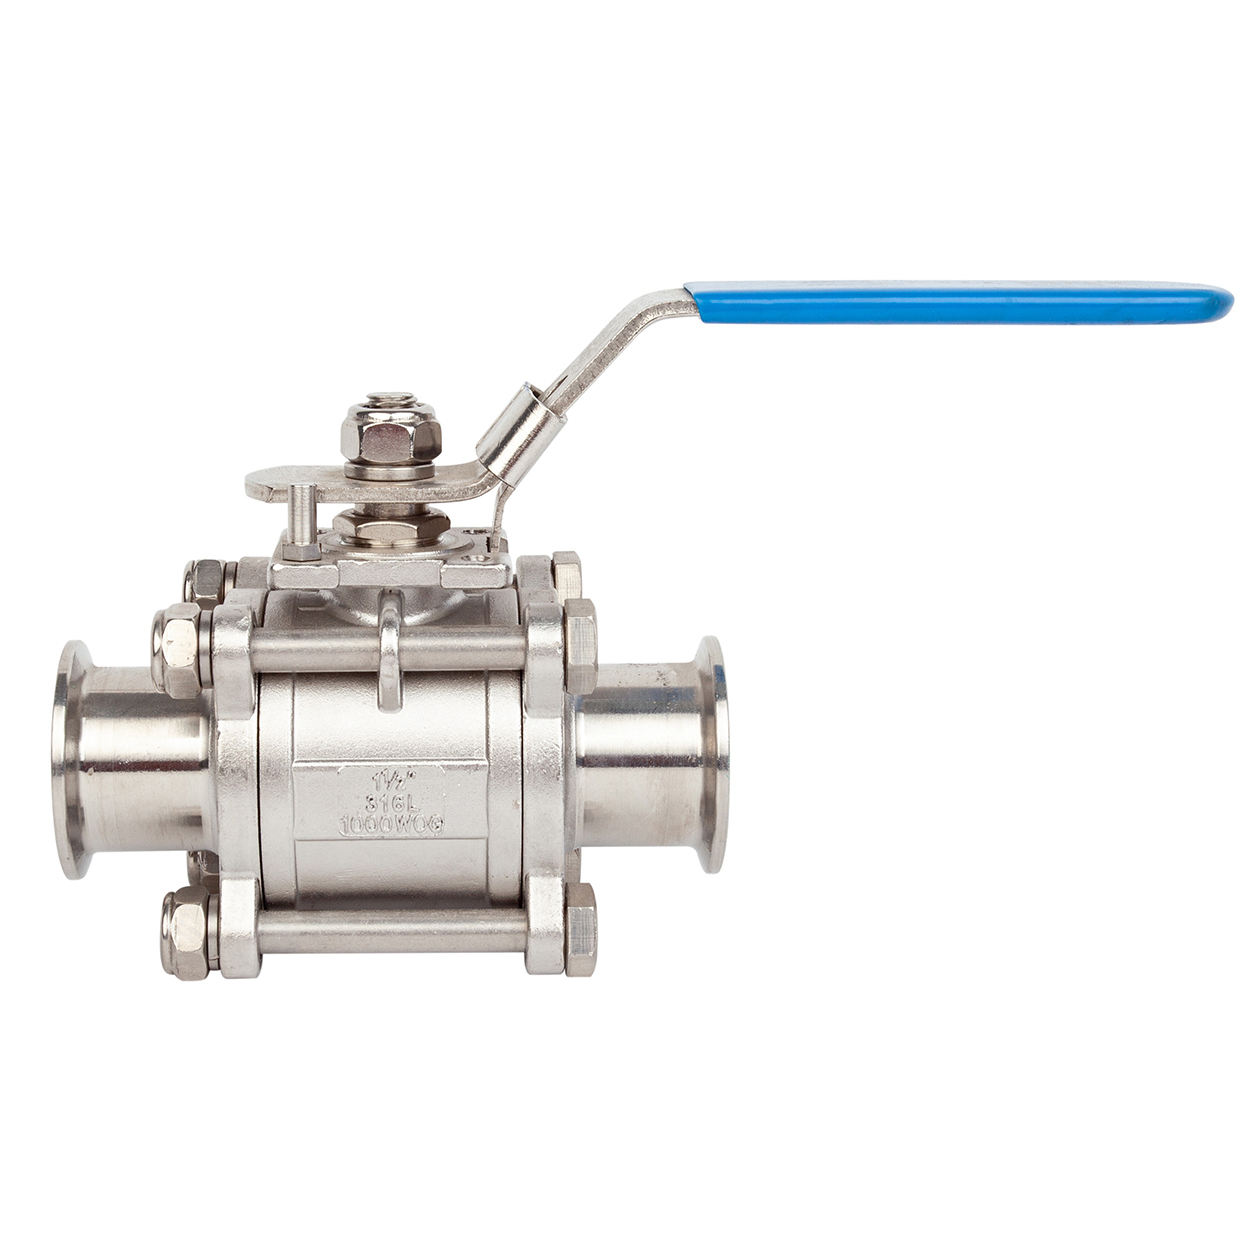 Stainless Steel Sanitary Hygienic Tri Clamp 3-piece Ball Valves